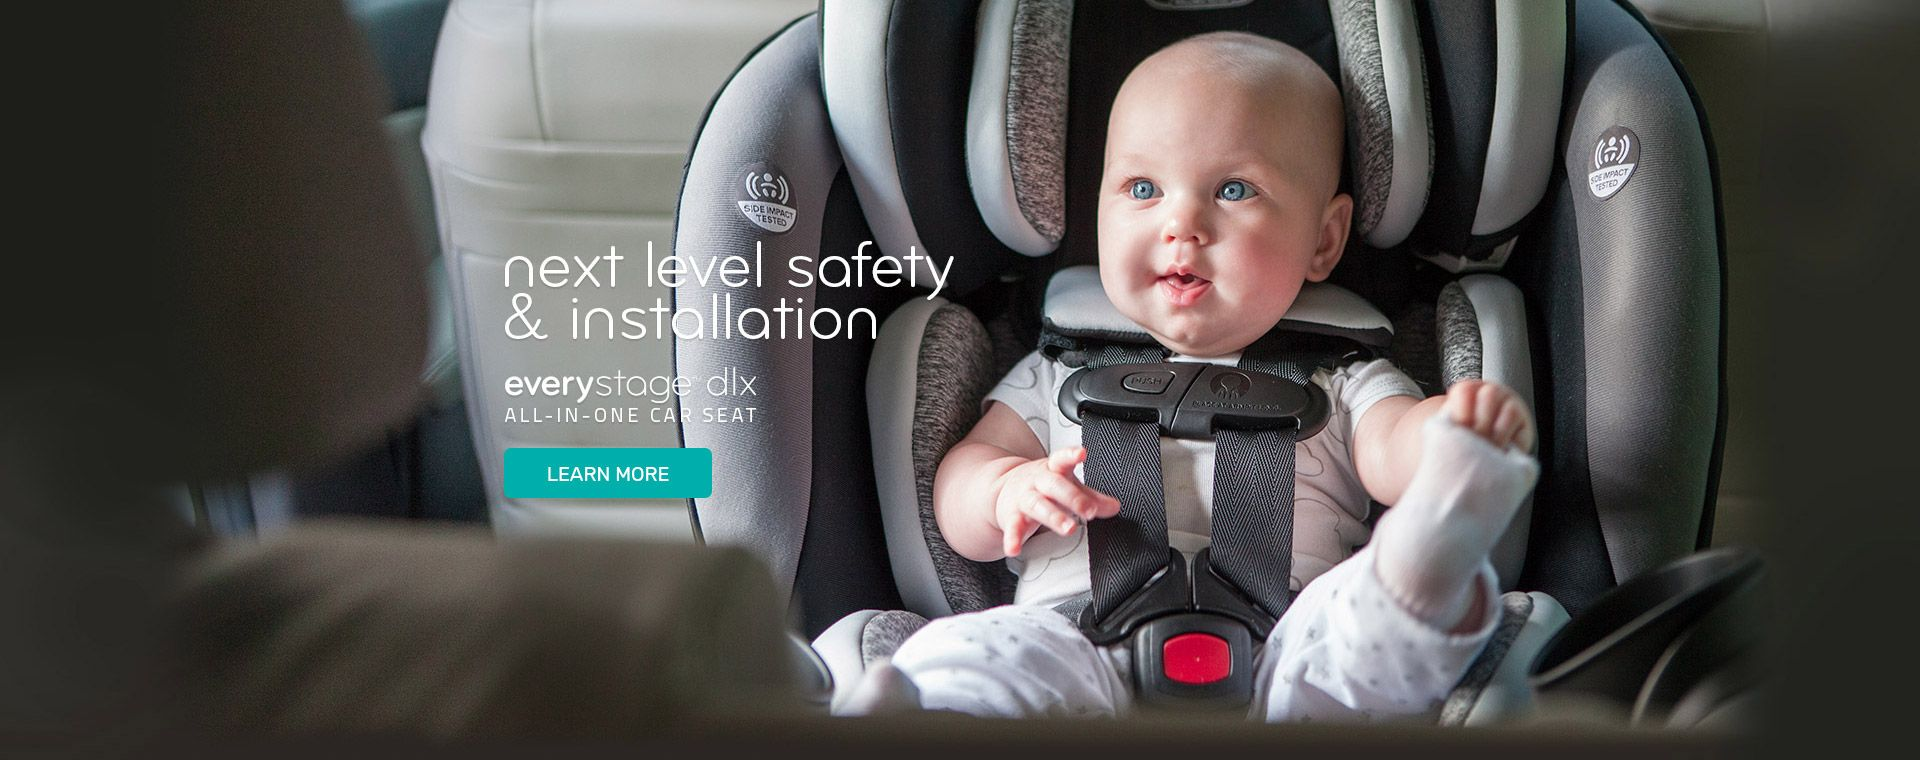 Innovative Baby Products Designed For Safety Comfort Evenflo Innovative Baby Products Evenflo Baby Evenflo